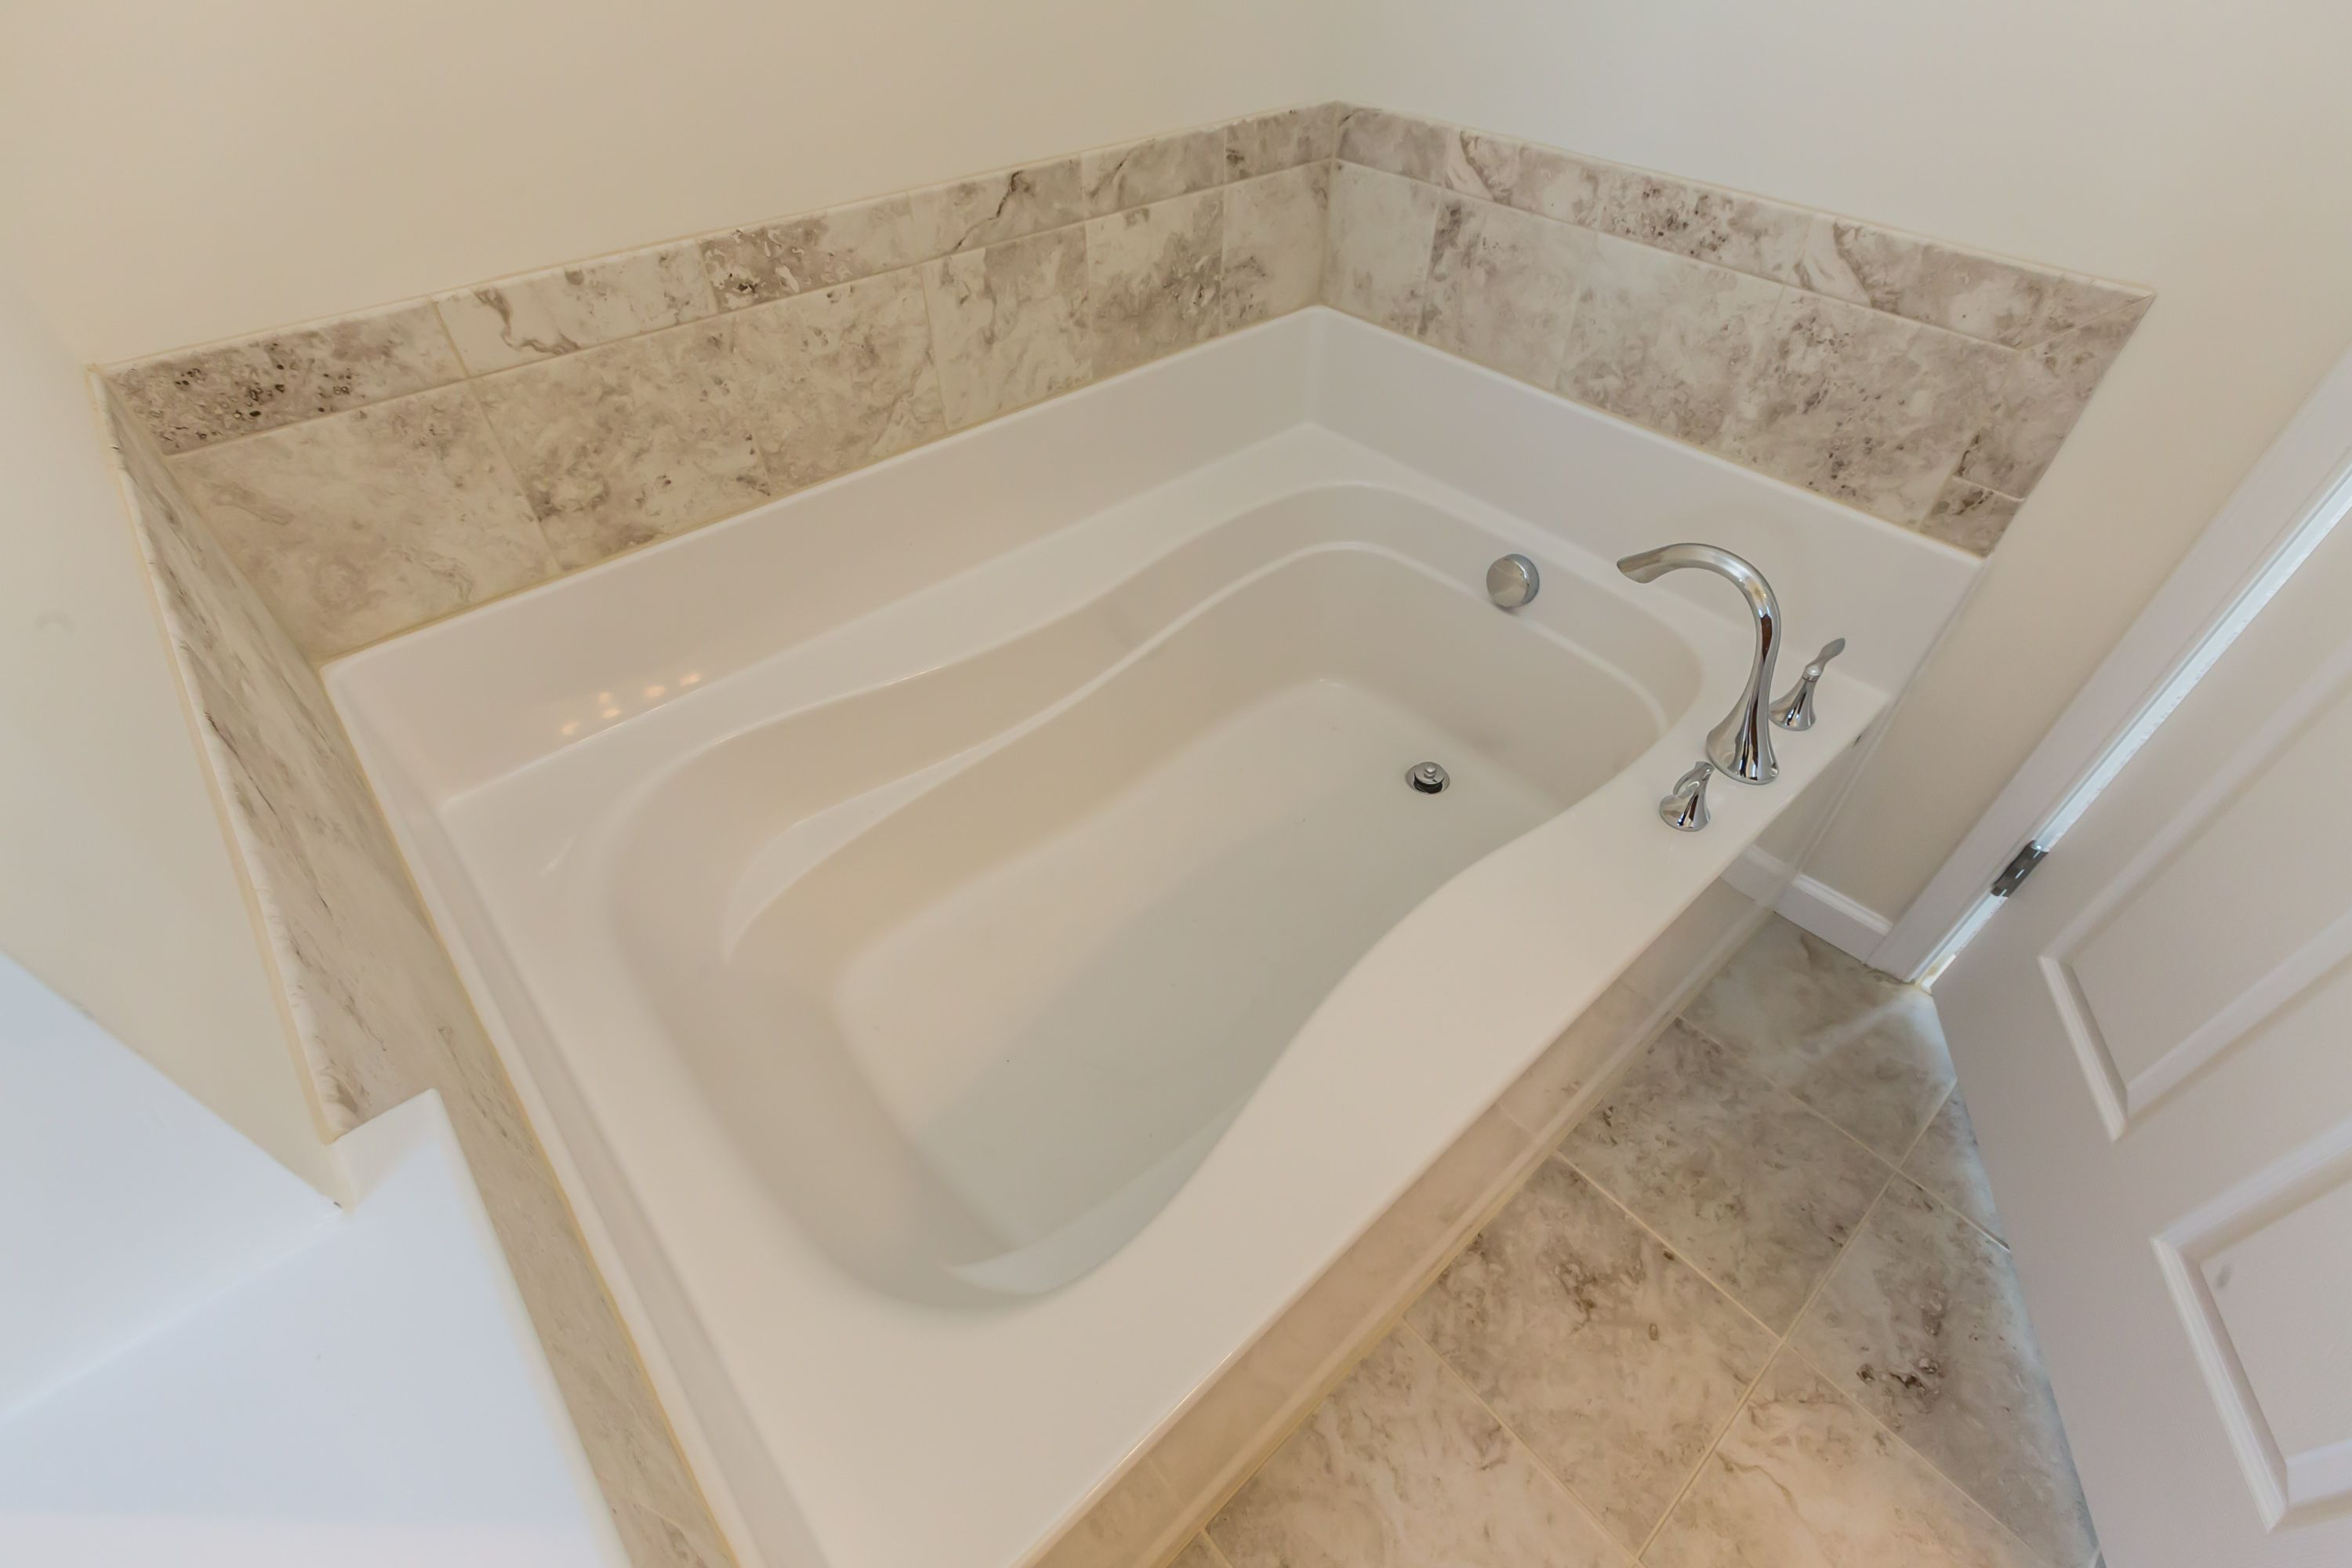 Bathroom featured in the Woodbine Select By Rouse Chamberlin Homes in Philadelphia, PA